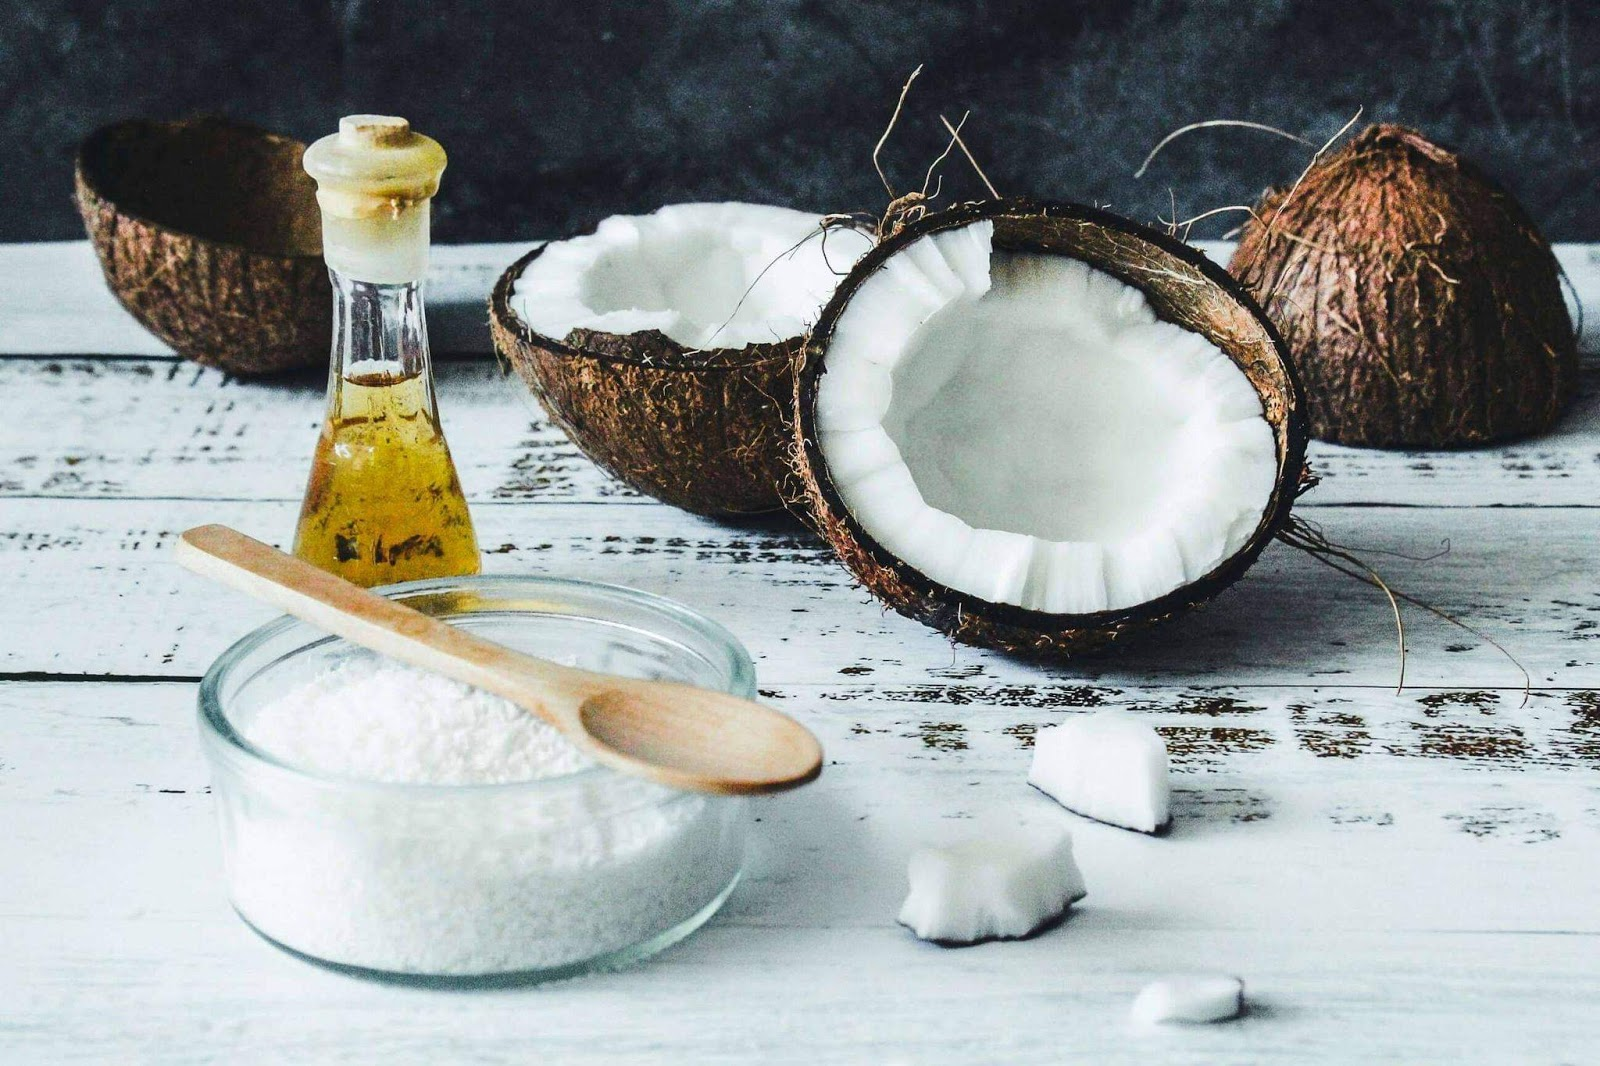 Coconut oil is good for you